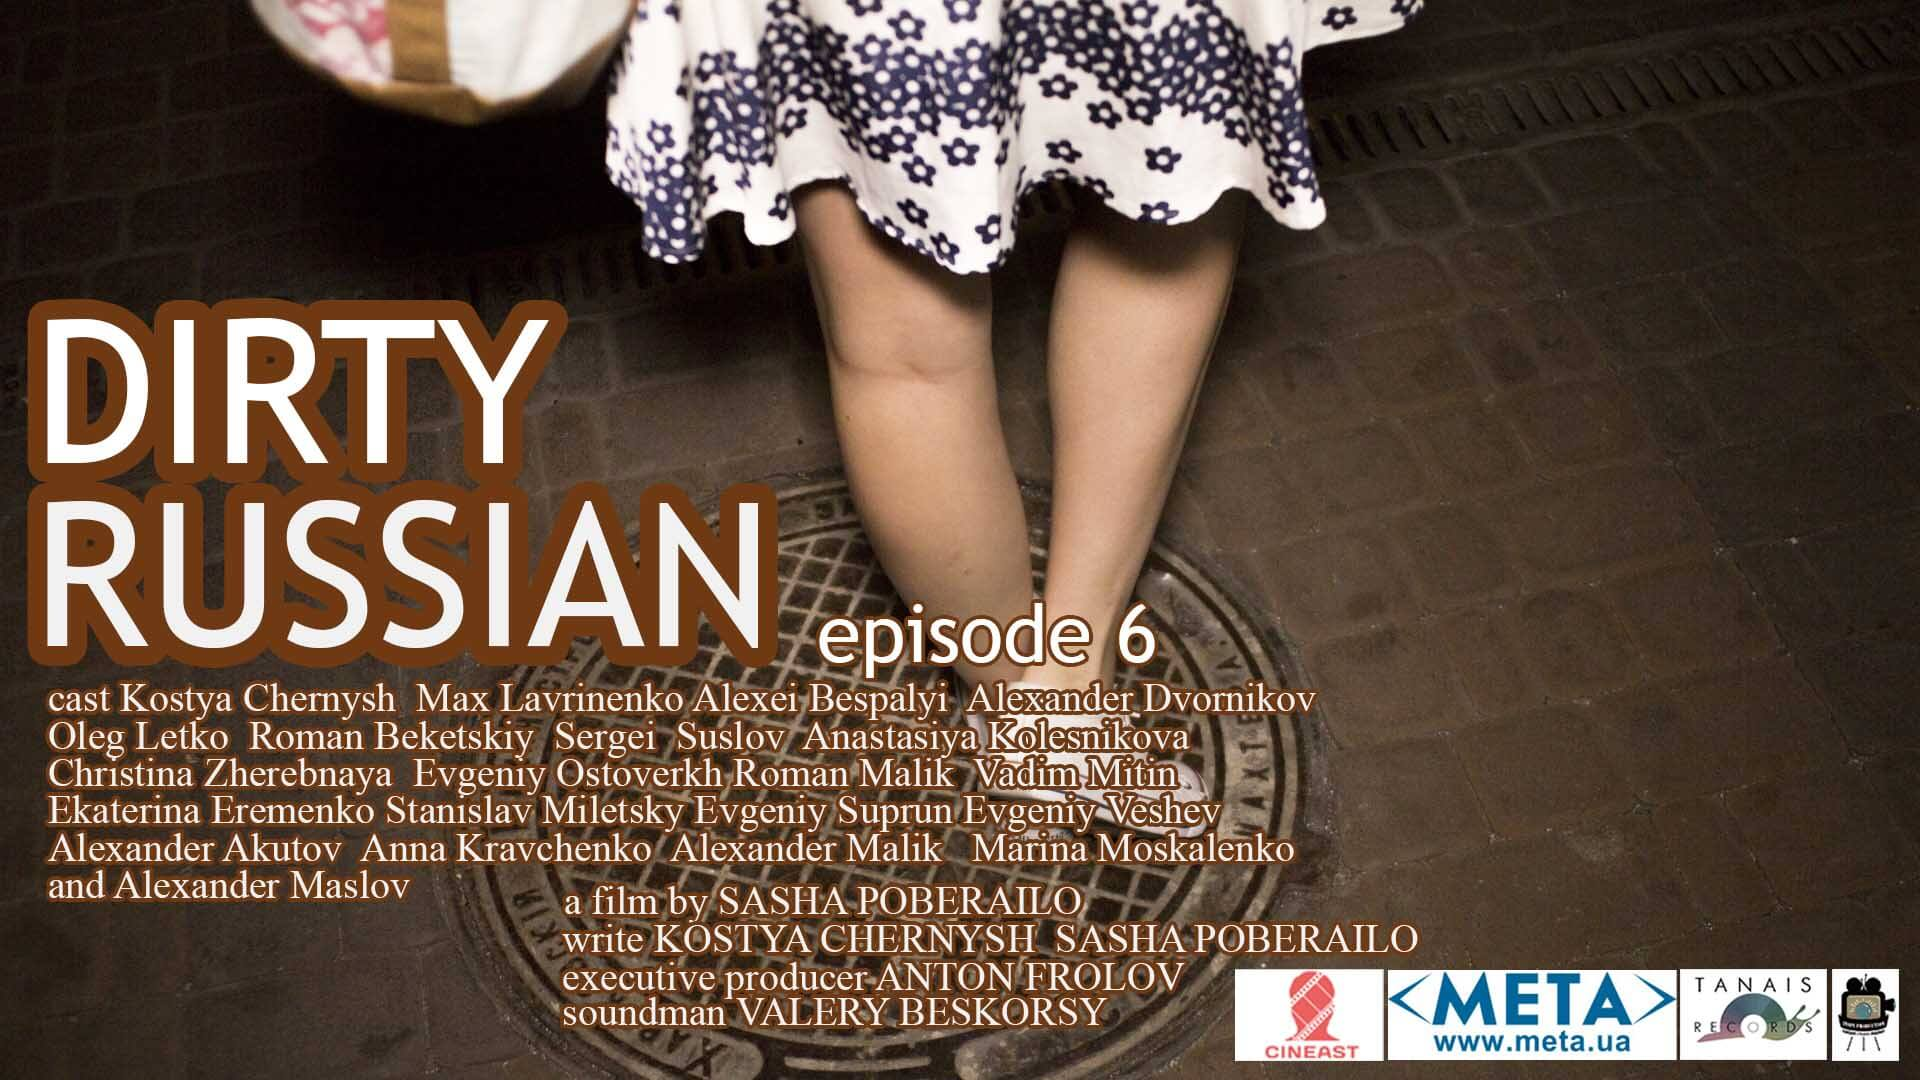 dirty russian episode 6 -